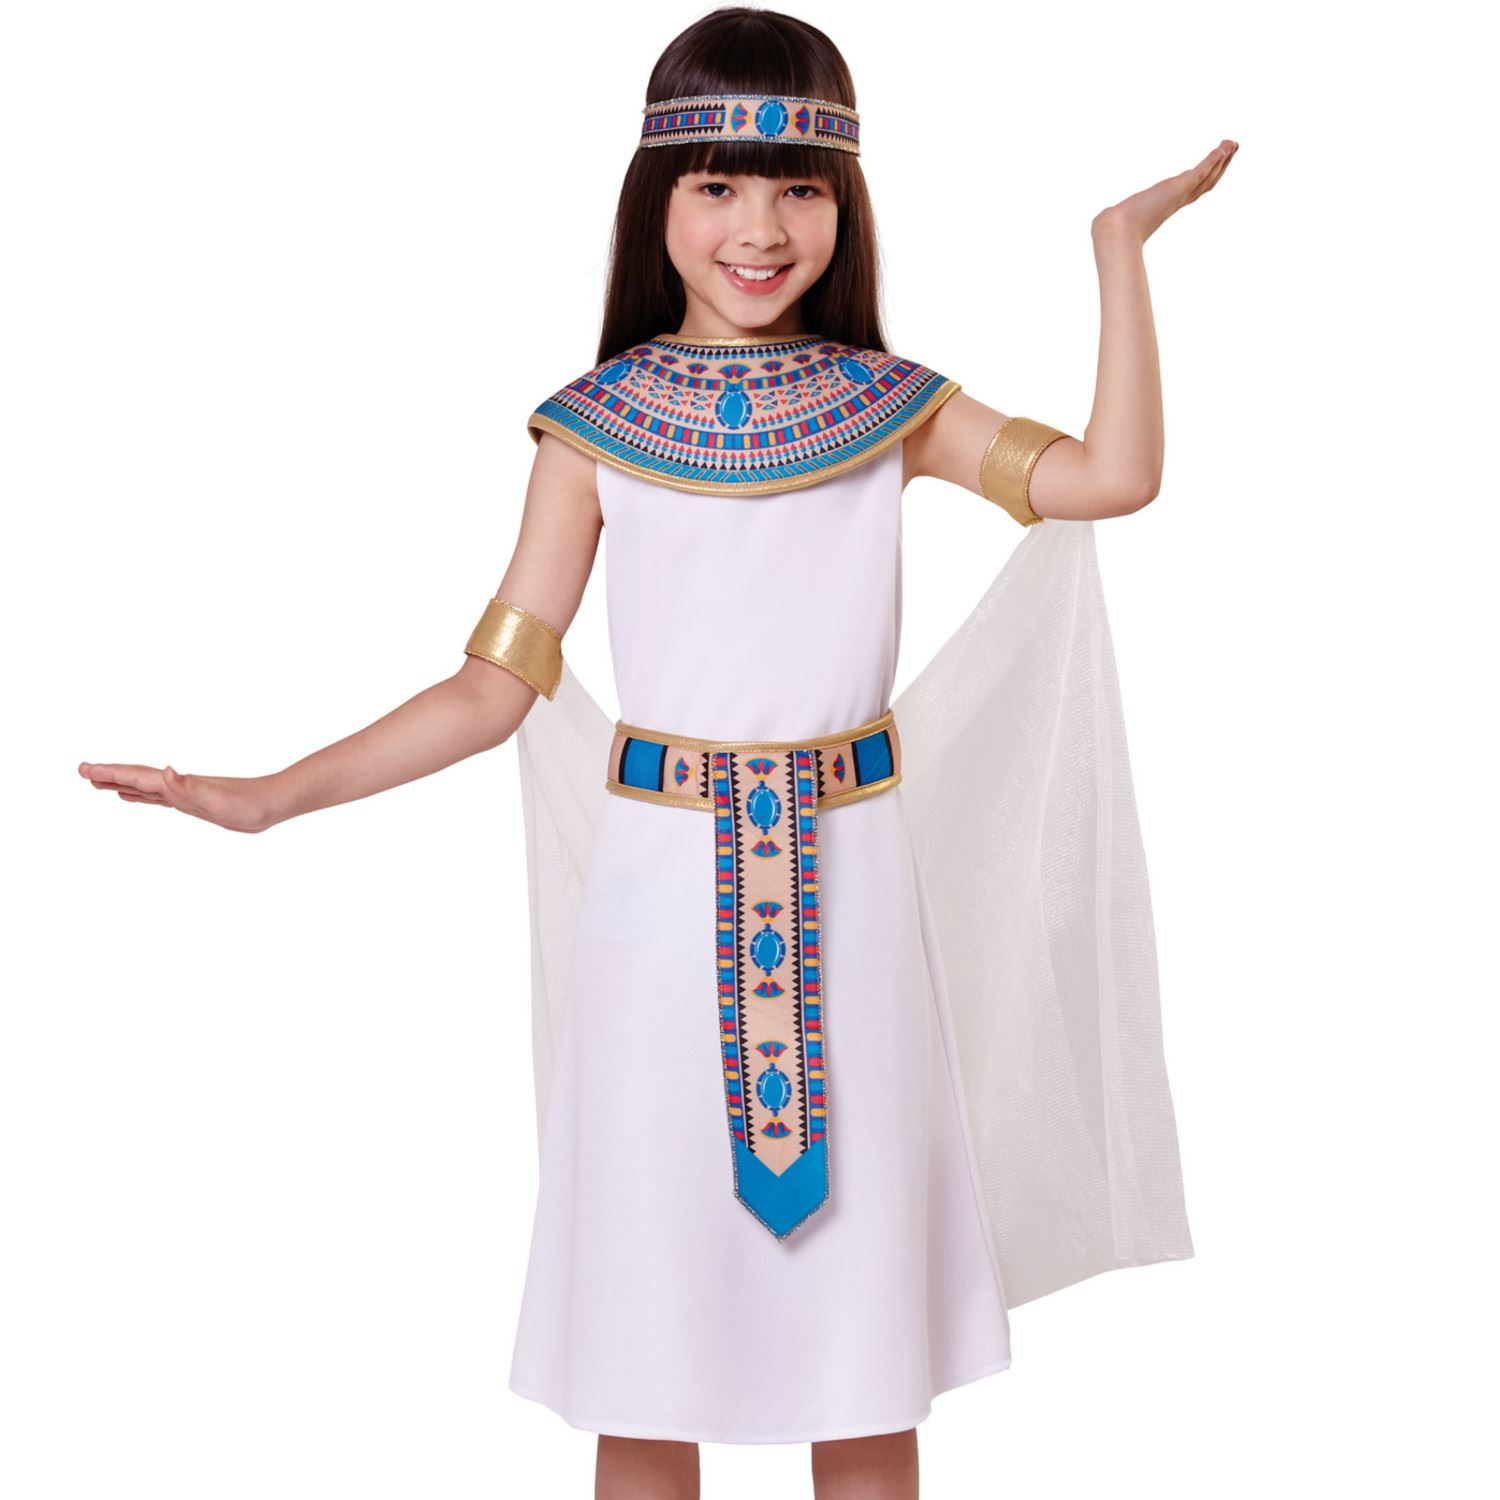 acf309a38fb Details about Egyptian Girl Costume Cleopatra Book Week Day Child Fancy  Dress Outfit Kids